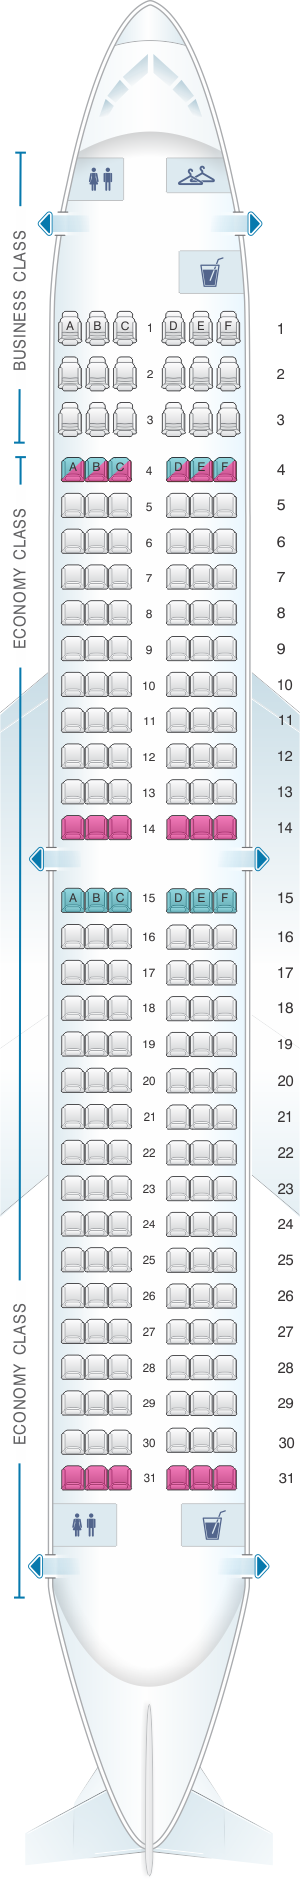 Seat map for Air Europa Boeing B737 800